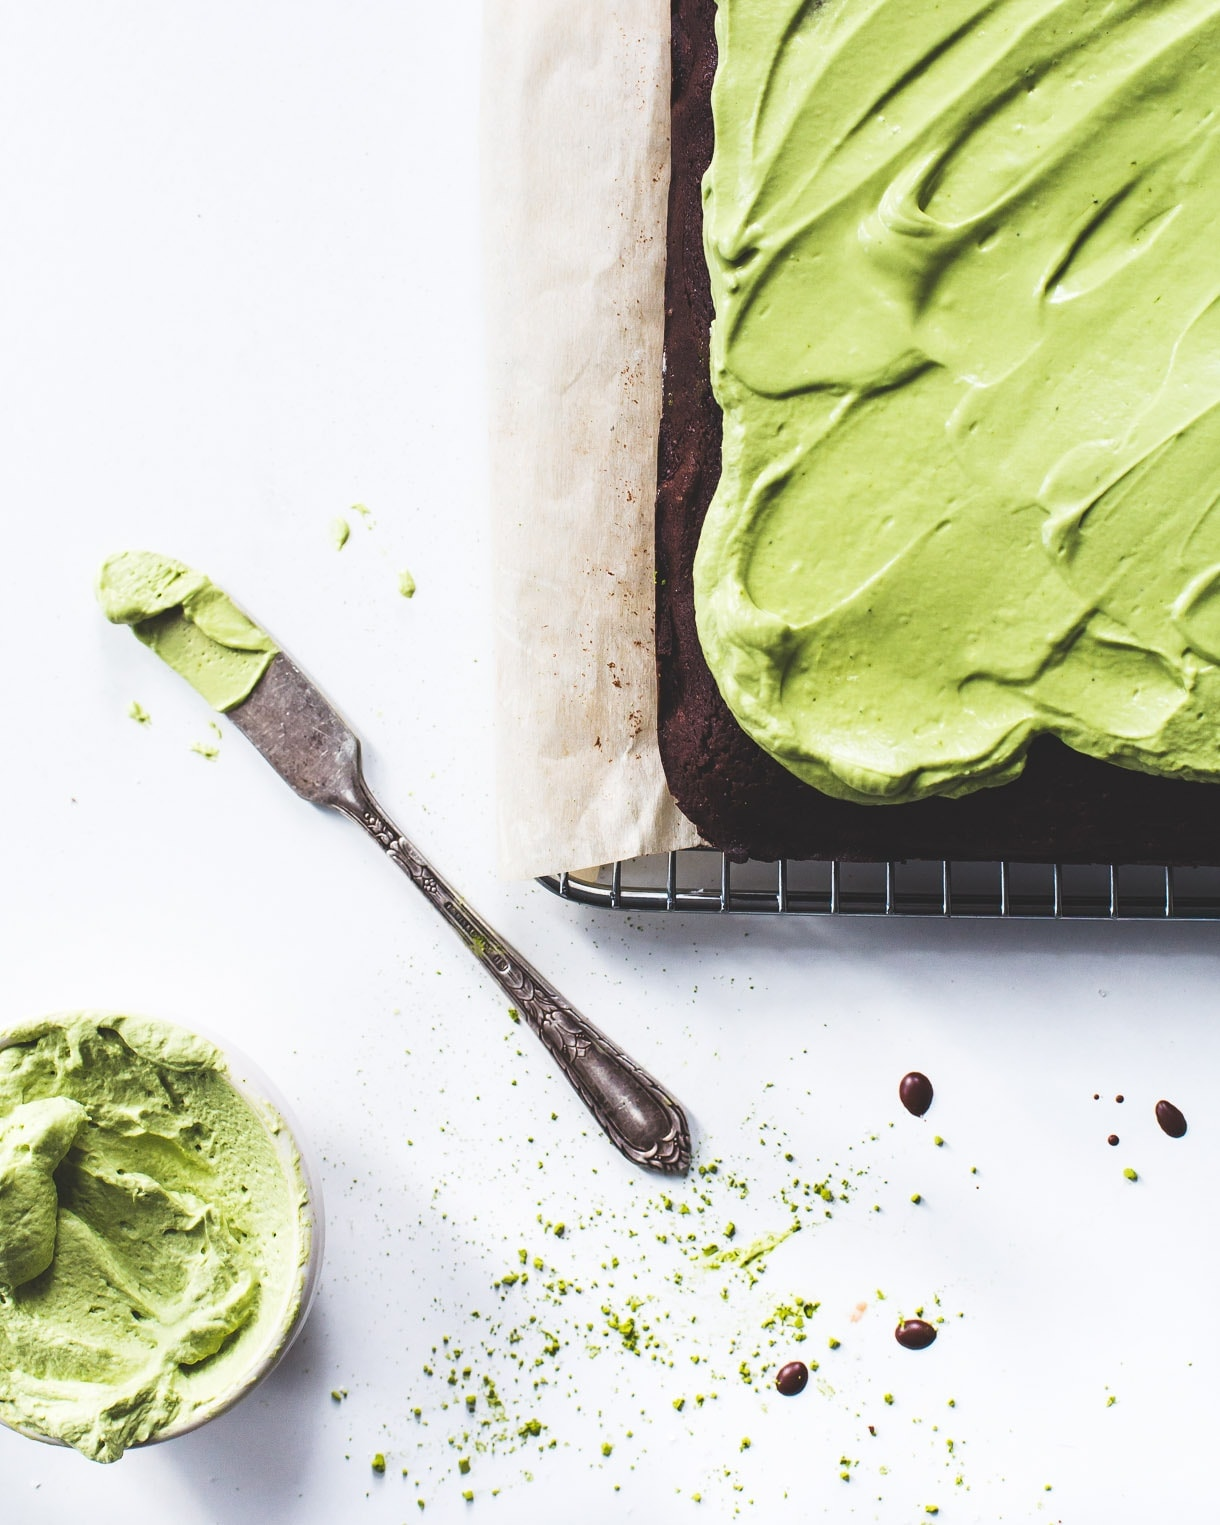 Homemade Gluten Free Brownie Recipe with Matcha Frosting